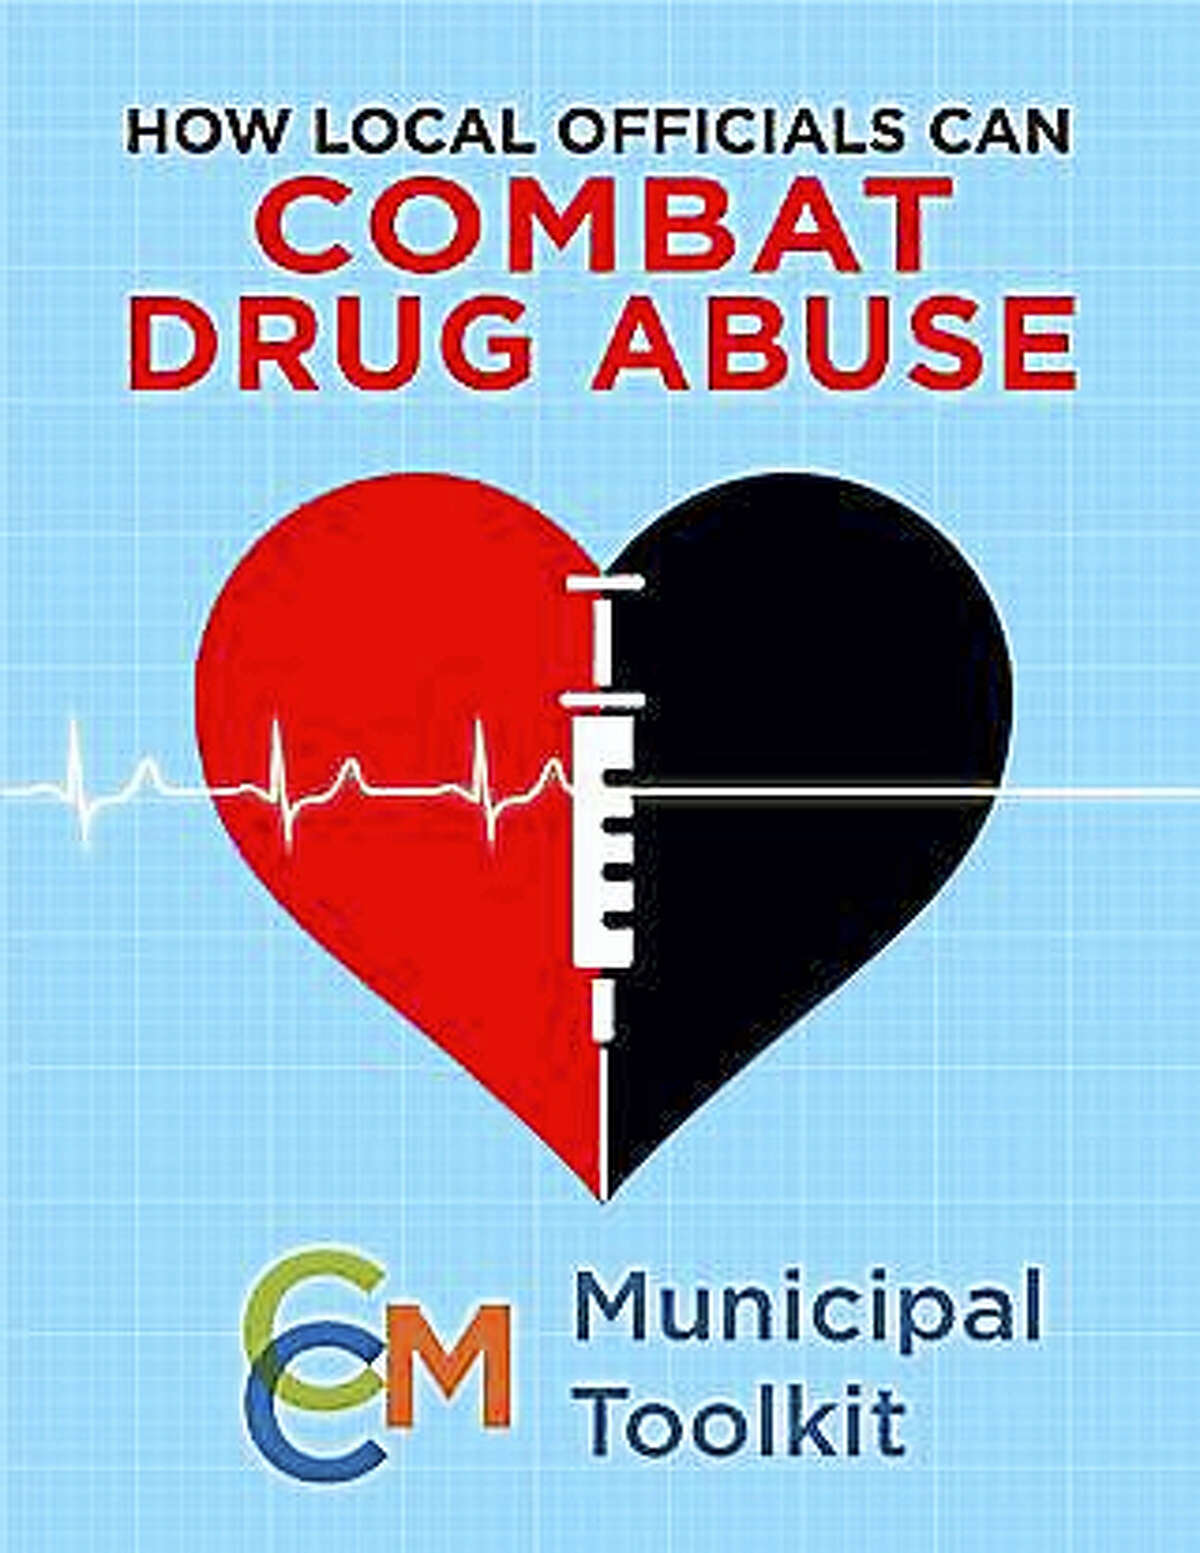 """The public-policy toolkit, """"How Local Leaders Can Combat Drug Abuse,"""" offers a plan for leadership and guidance to help """"stem the crisis and provide support to individuals and families struggling to overcome addiction to save lives."""""""